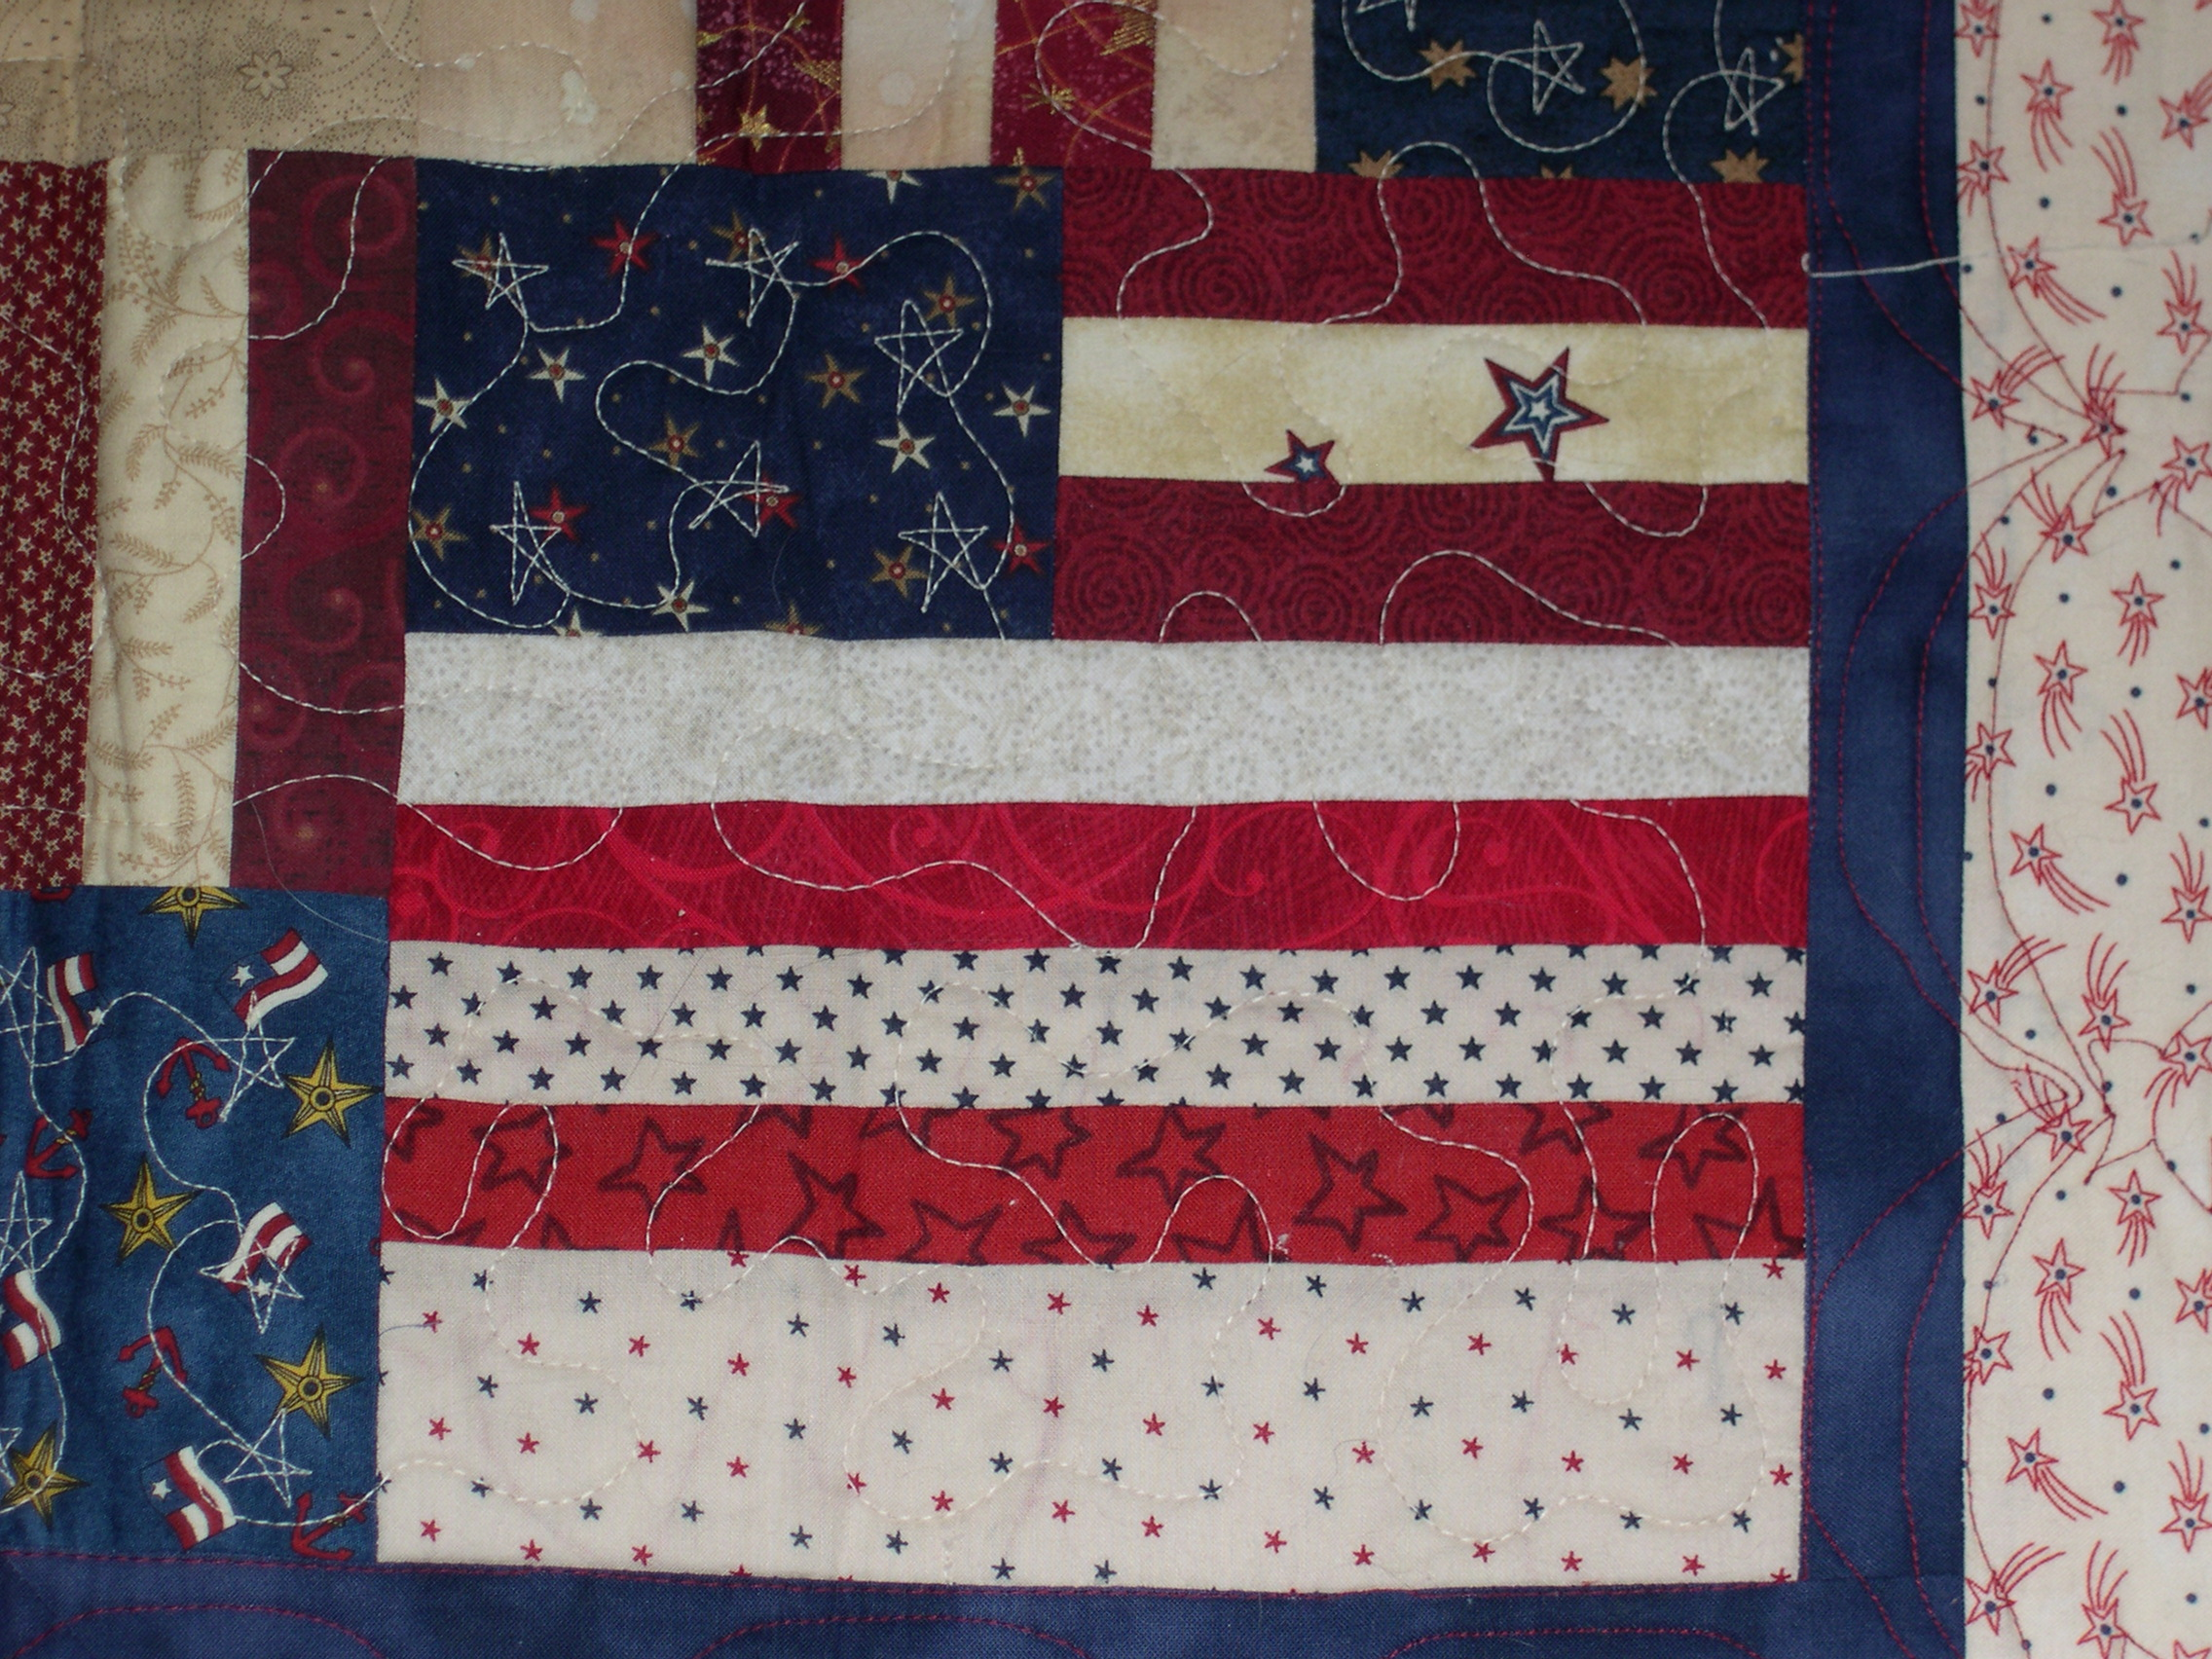 Second block of Flag Quilt